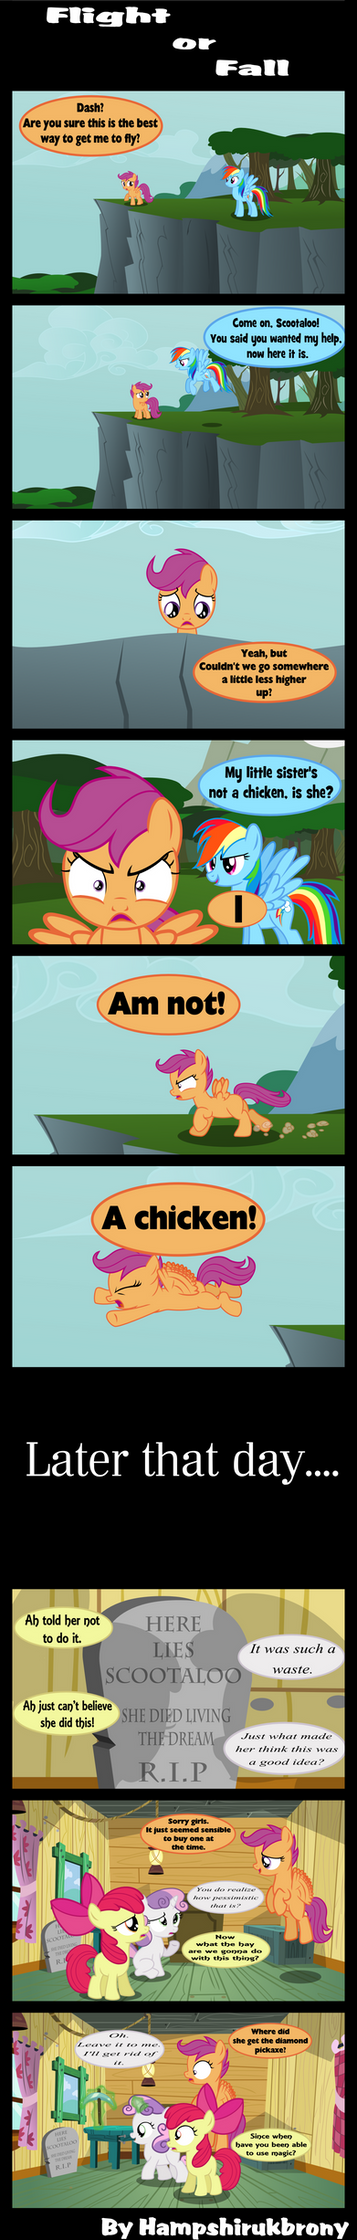 Flight or fall by Vector-Brony